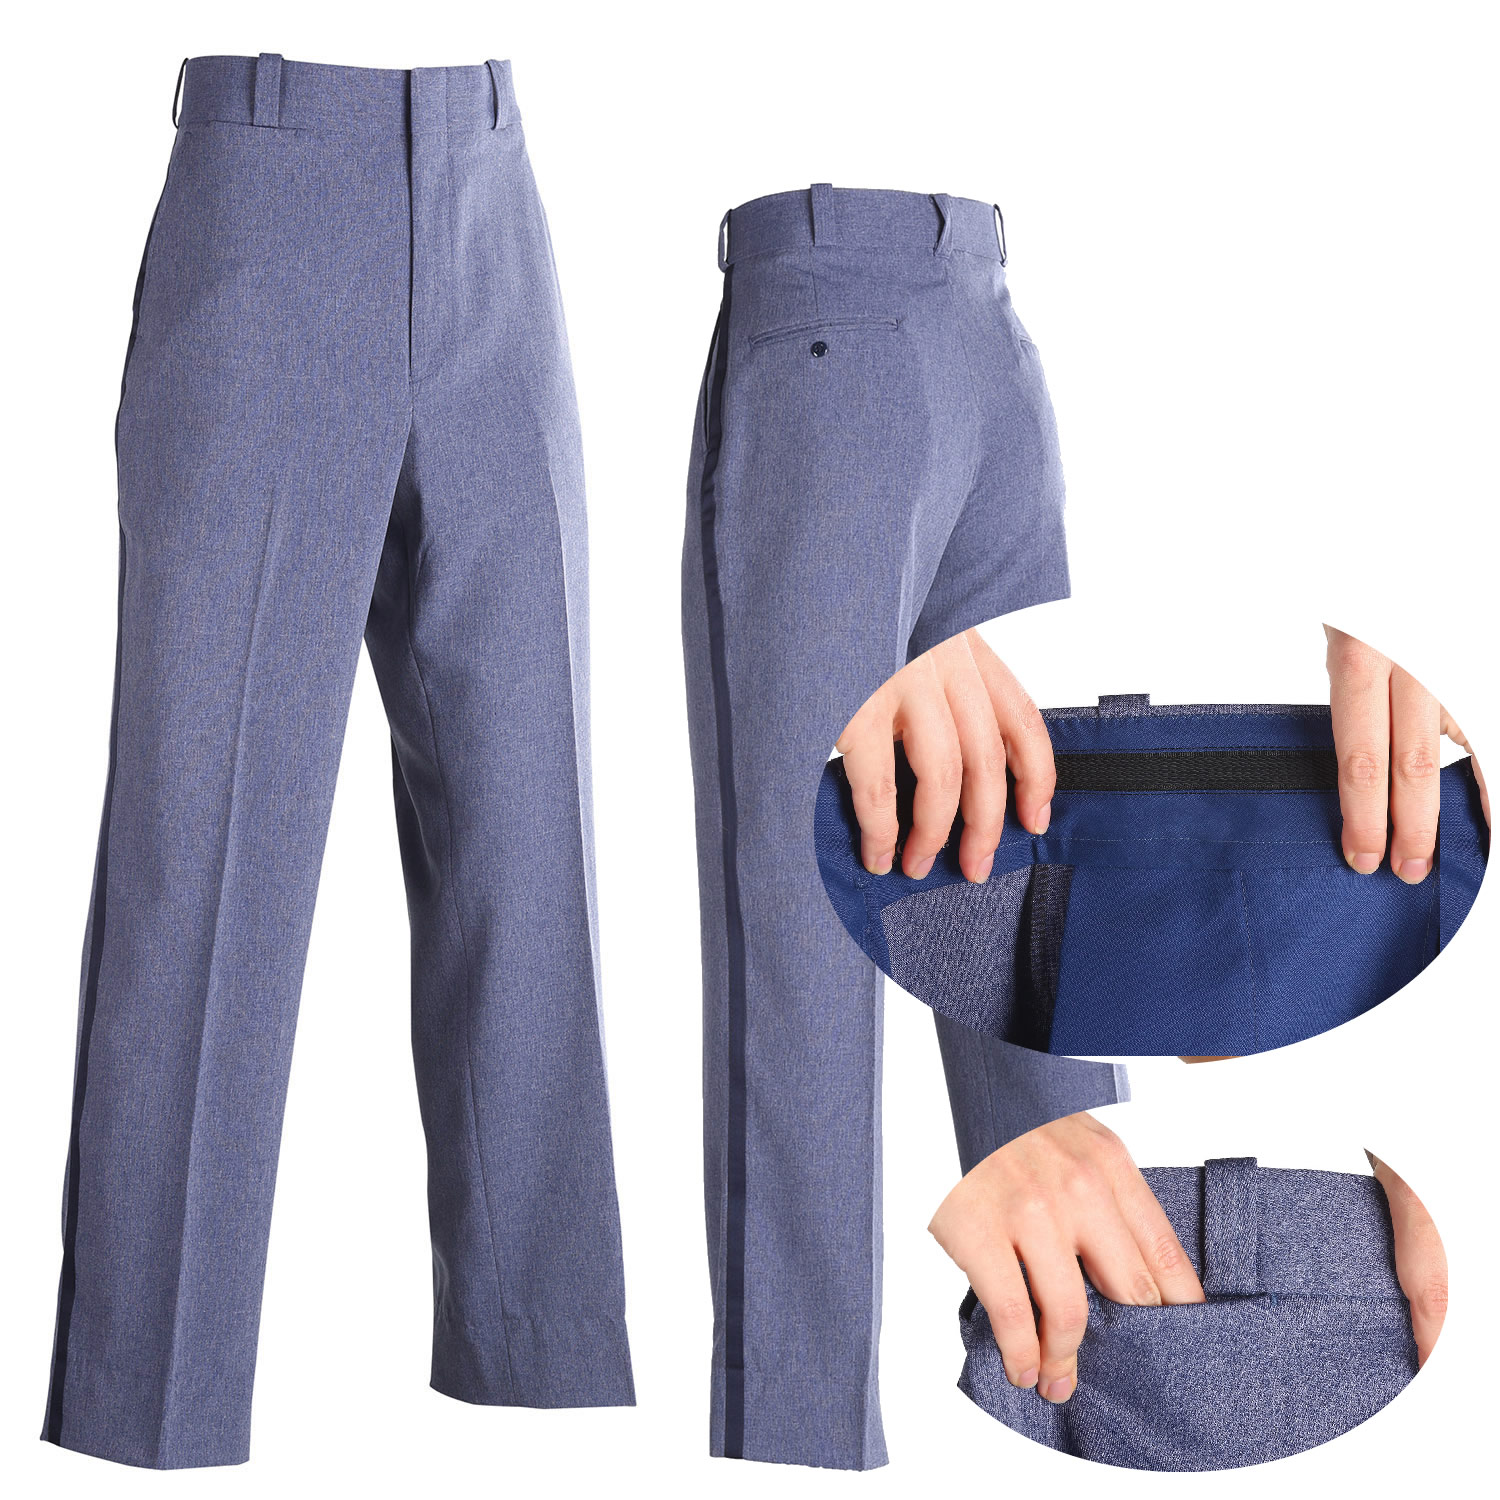 Beat well-fucked letter carrier uniform